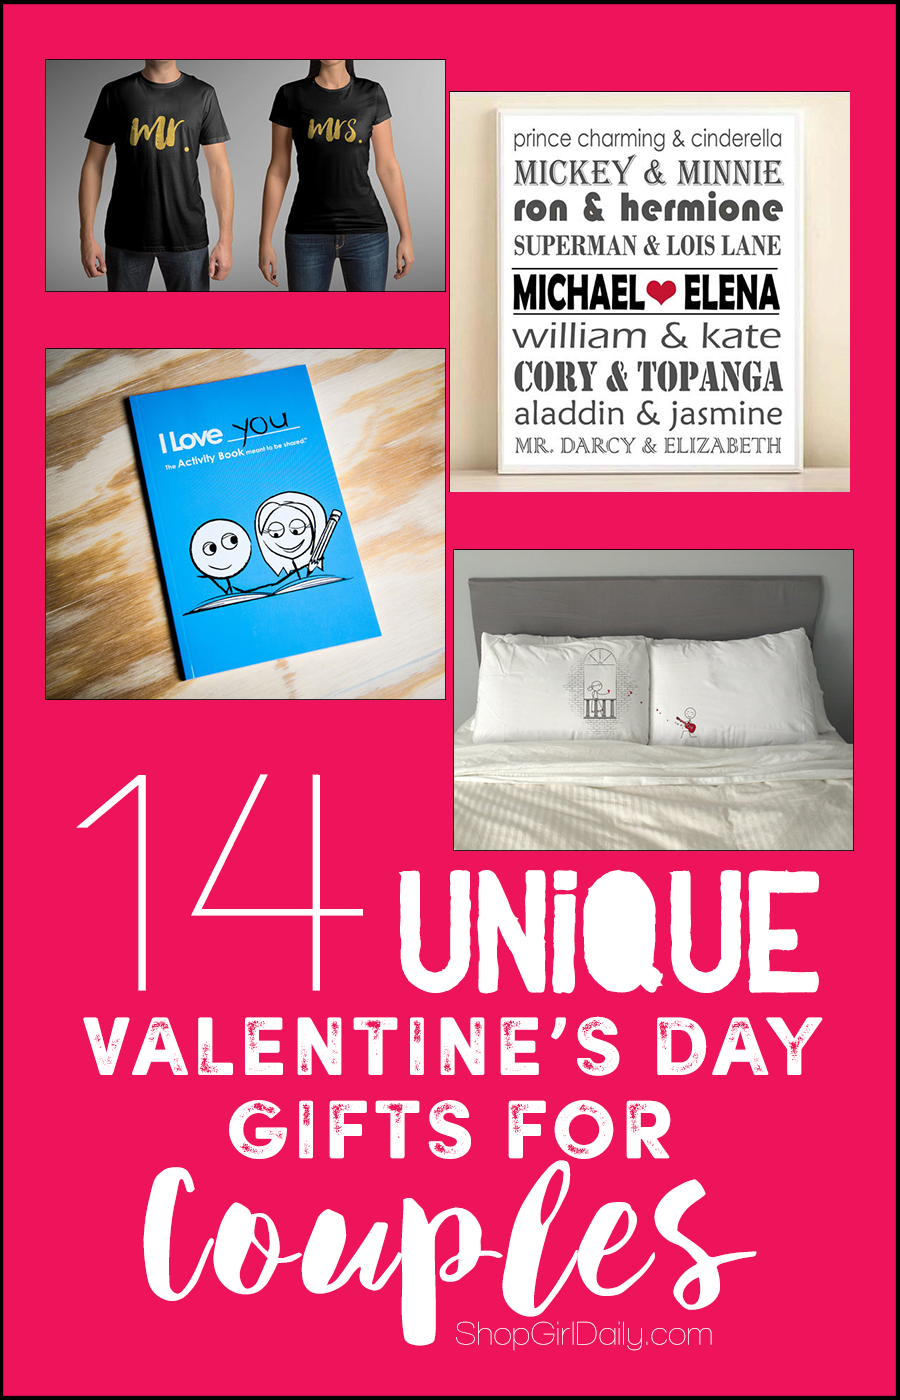 14 Unique Valentine's Day Gifts for Couples | ShopGirlDaily.com